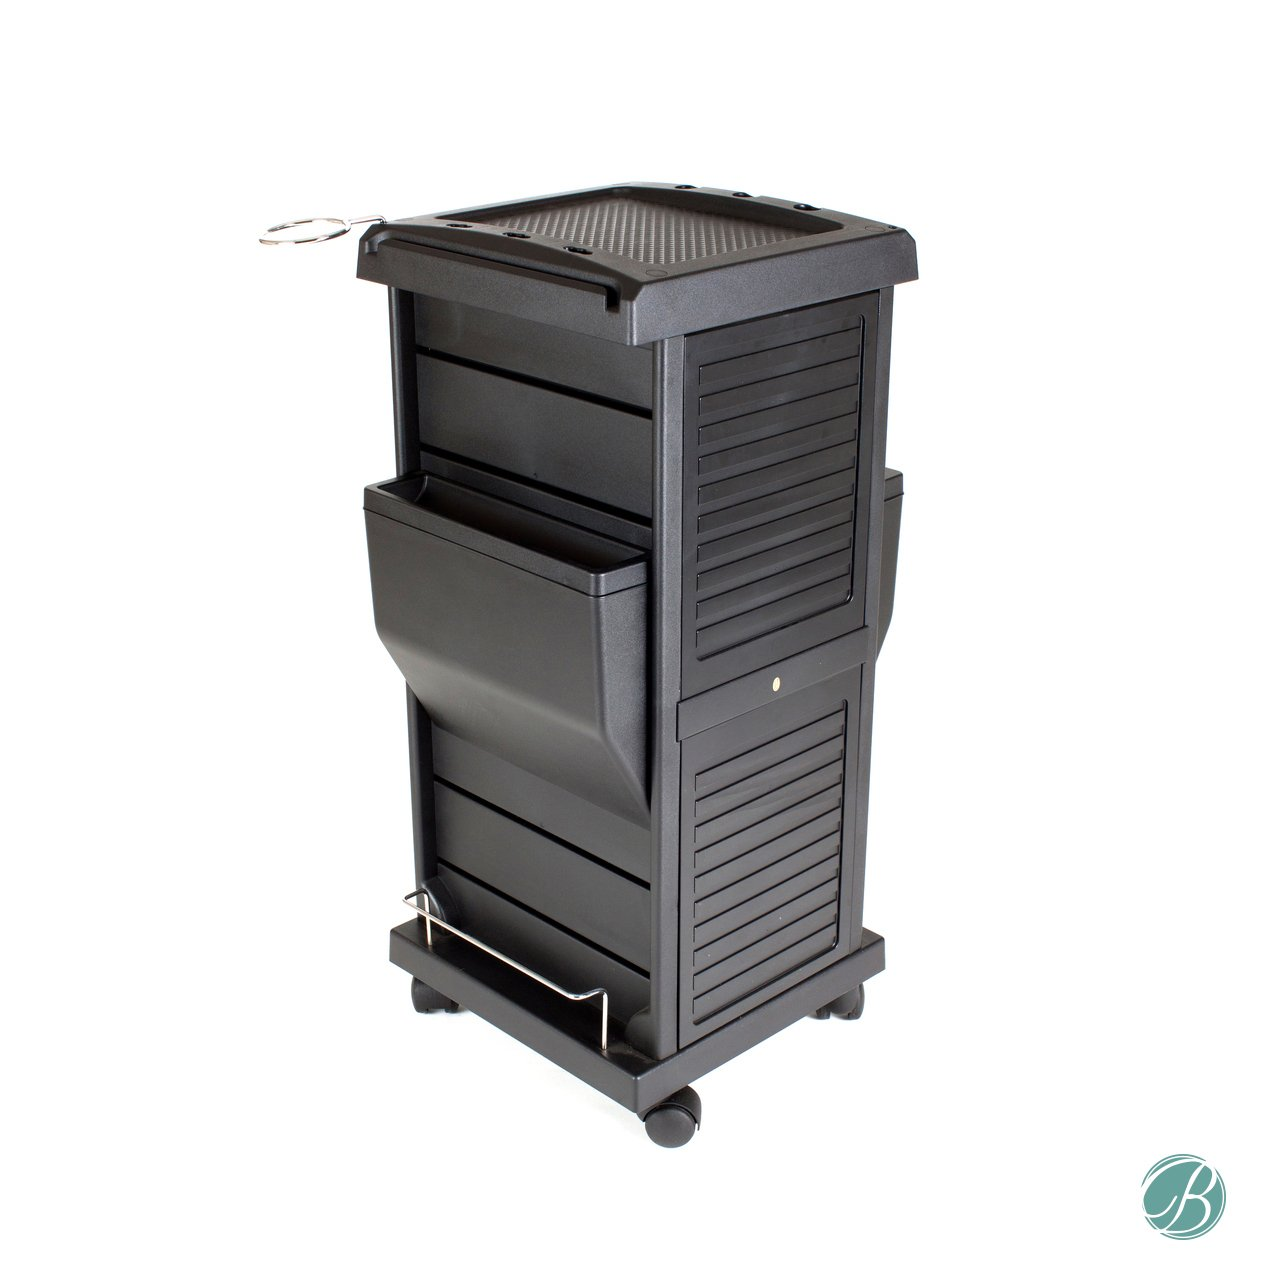 Berkeley Lockable Salon Trolley Cart Perfect for Hair Salon,Tattoo Studio, Spa, Office, Skincare, Day Spa